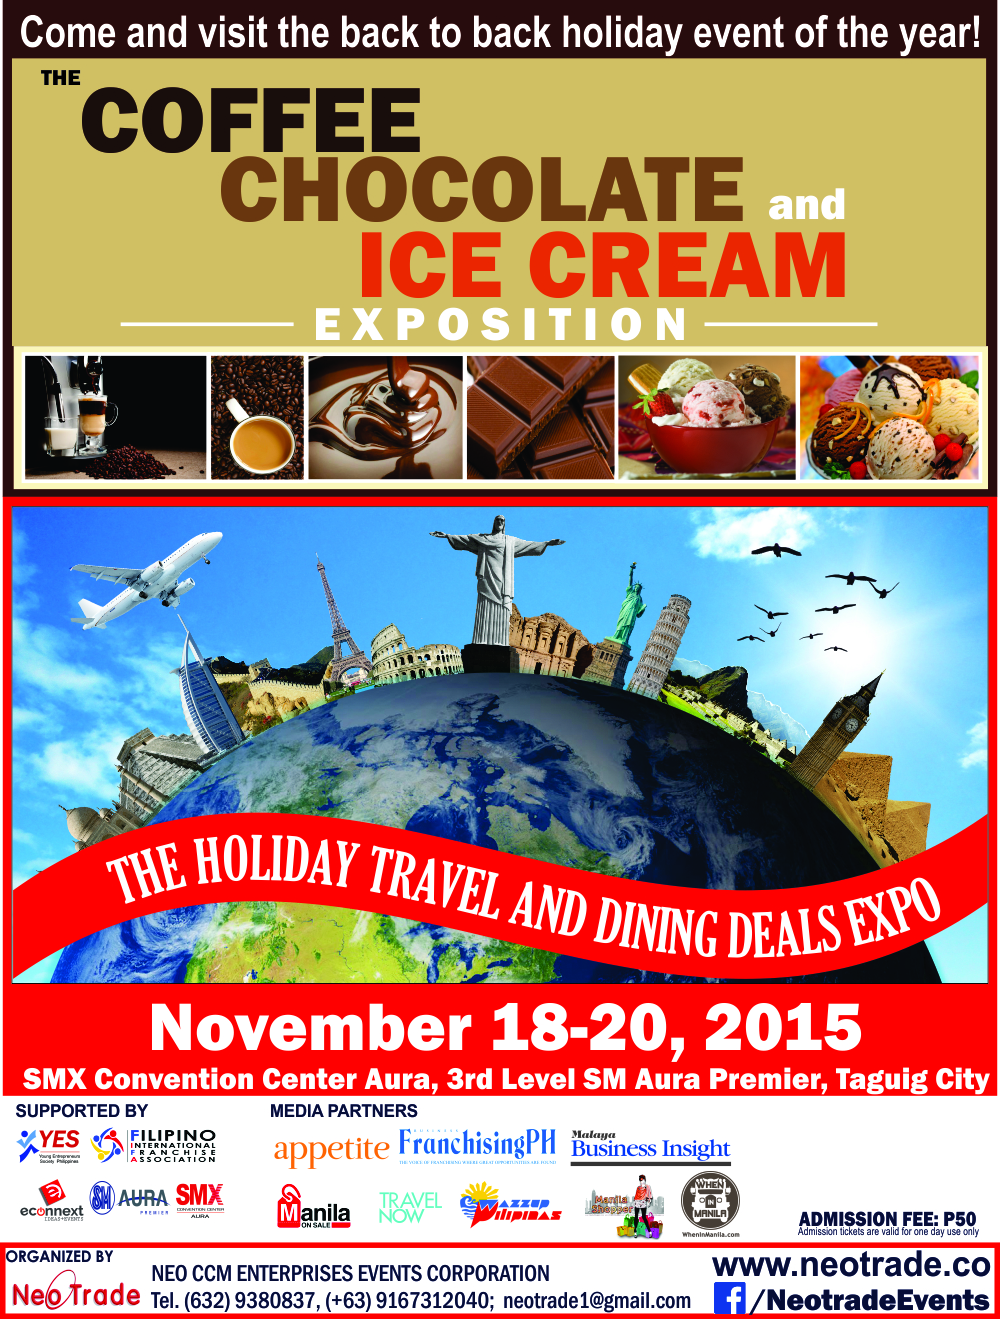 The Travel and Dining Deals Expo November 18-20 2015